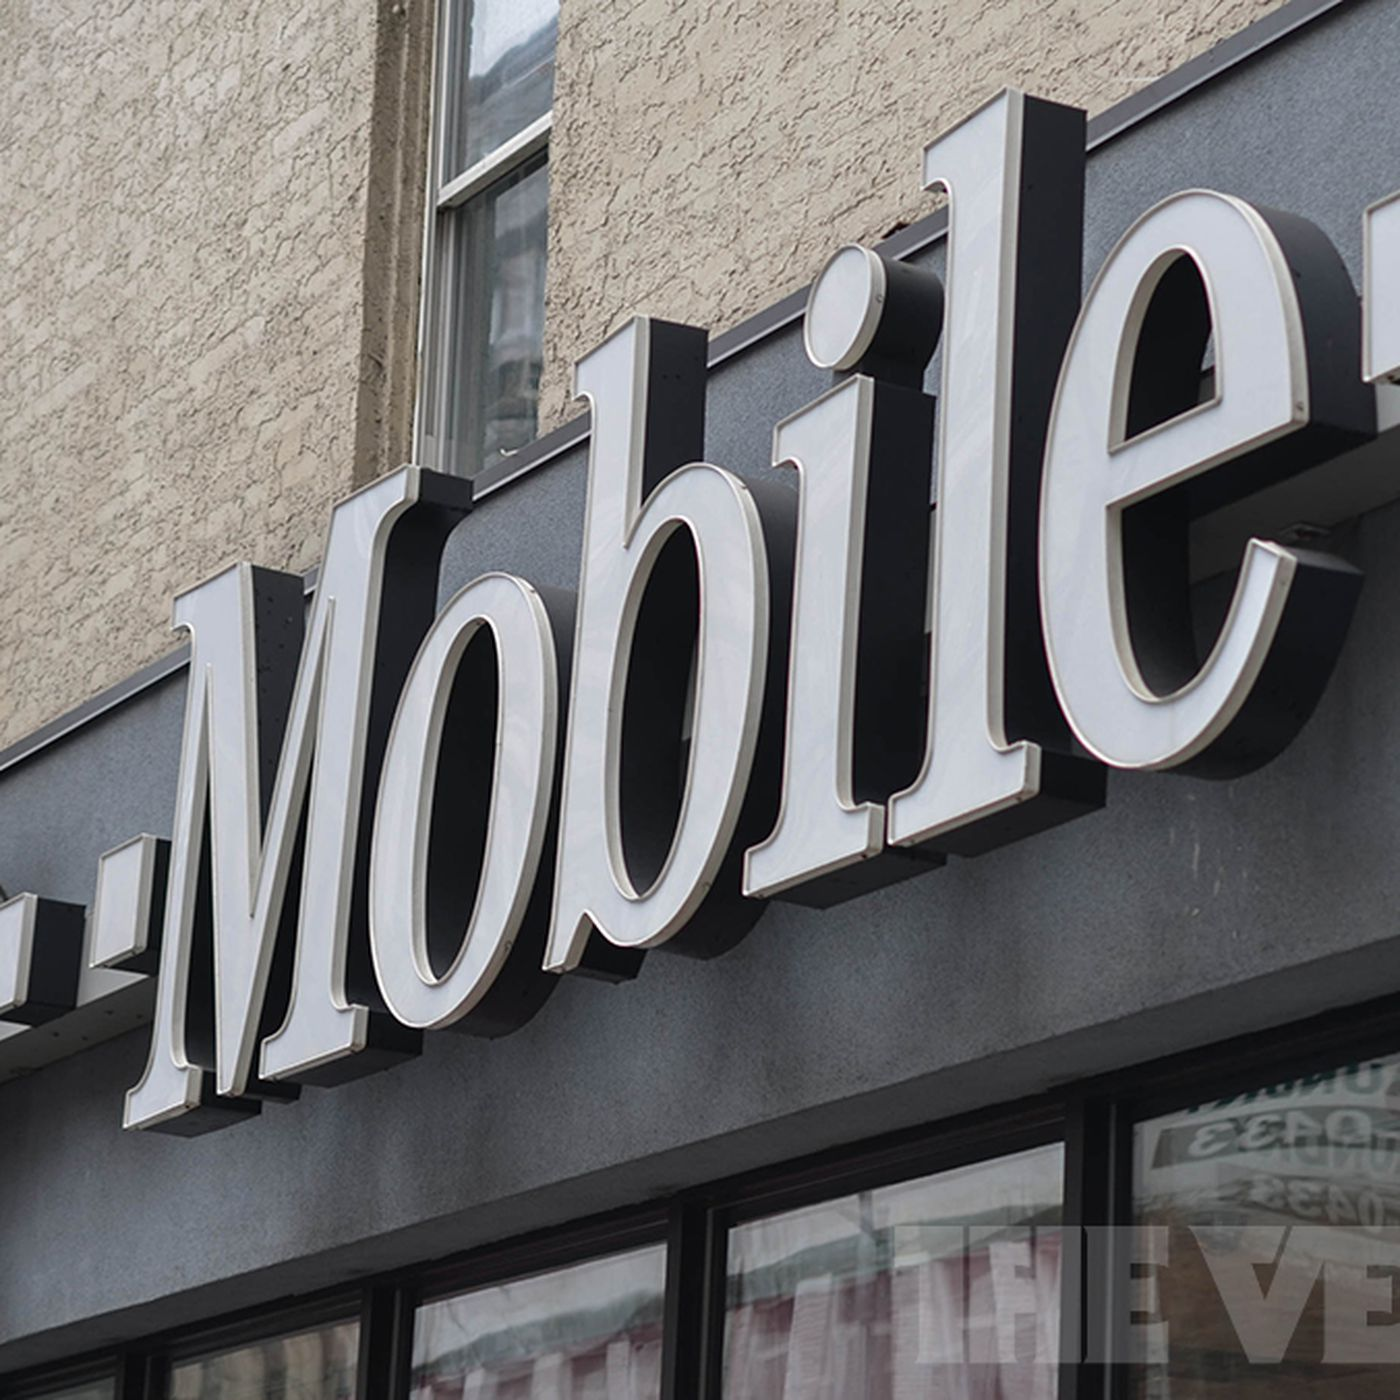 Sprint And T Mobile Have Announced That They Will Merge The Verge